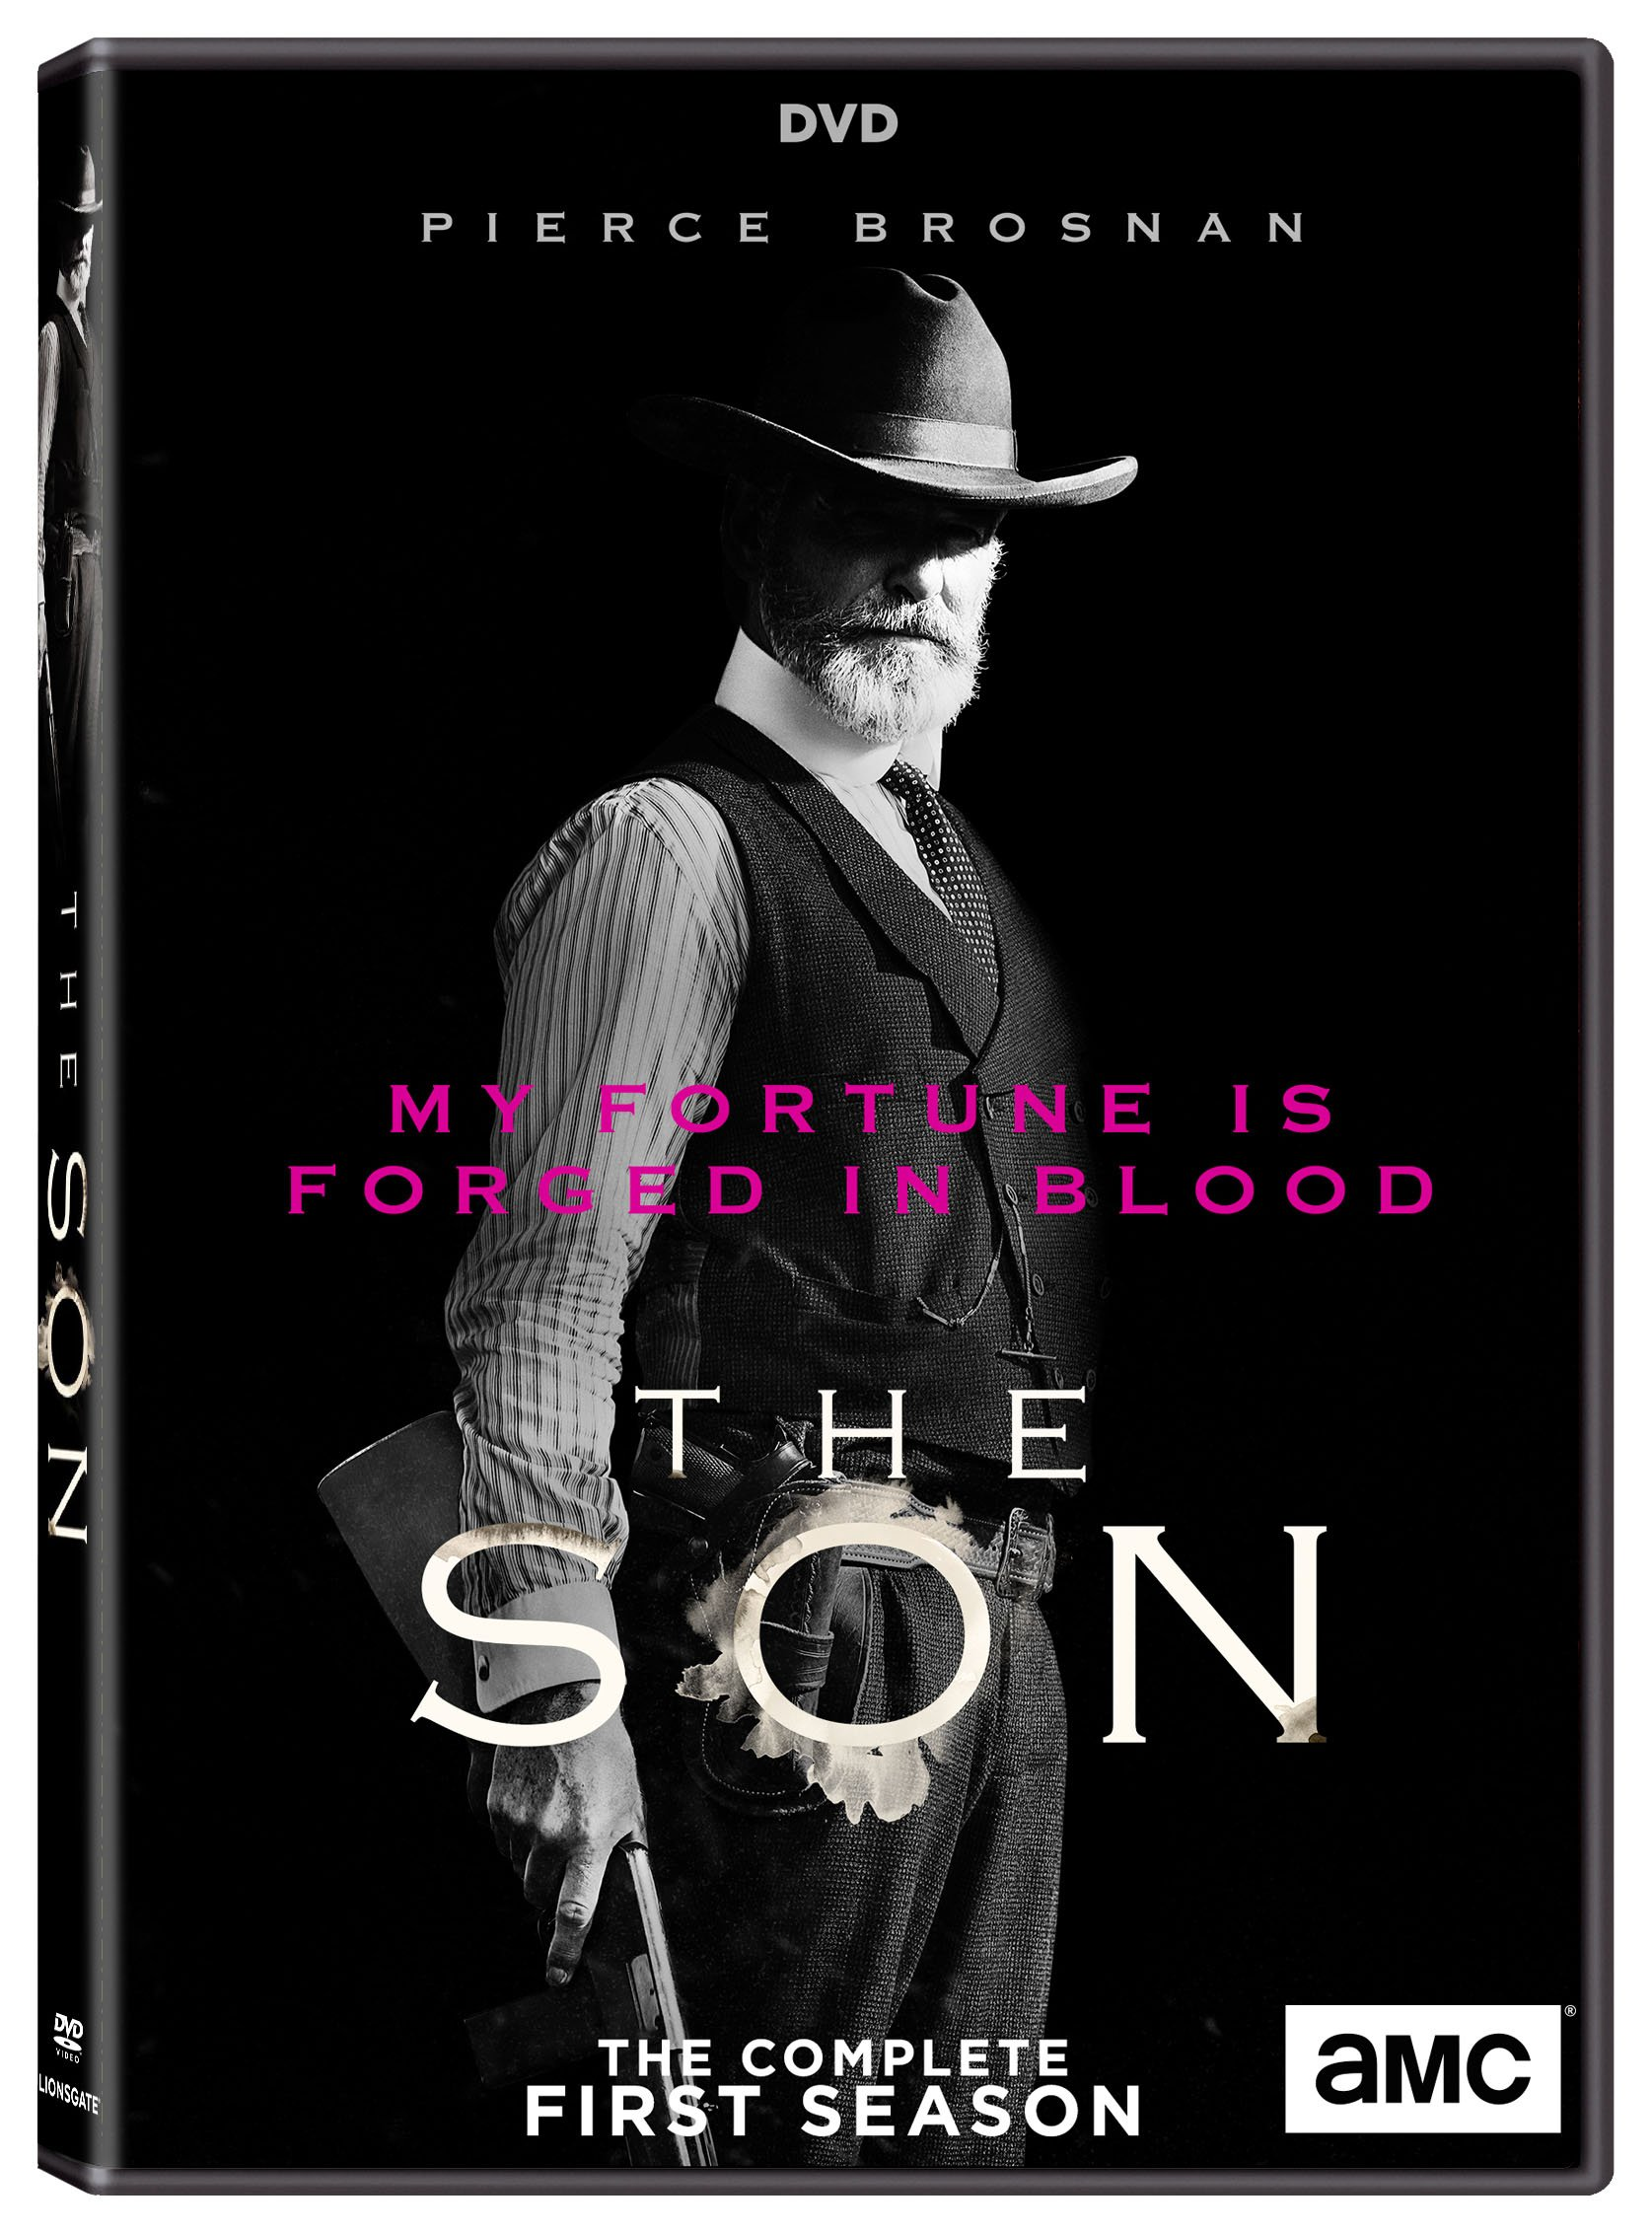 DVD : The Son: The Complete First Season (Widescreen, 3 Pack, AC-3, Dolby, 3 Disc)